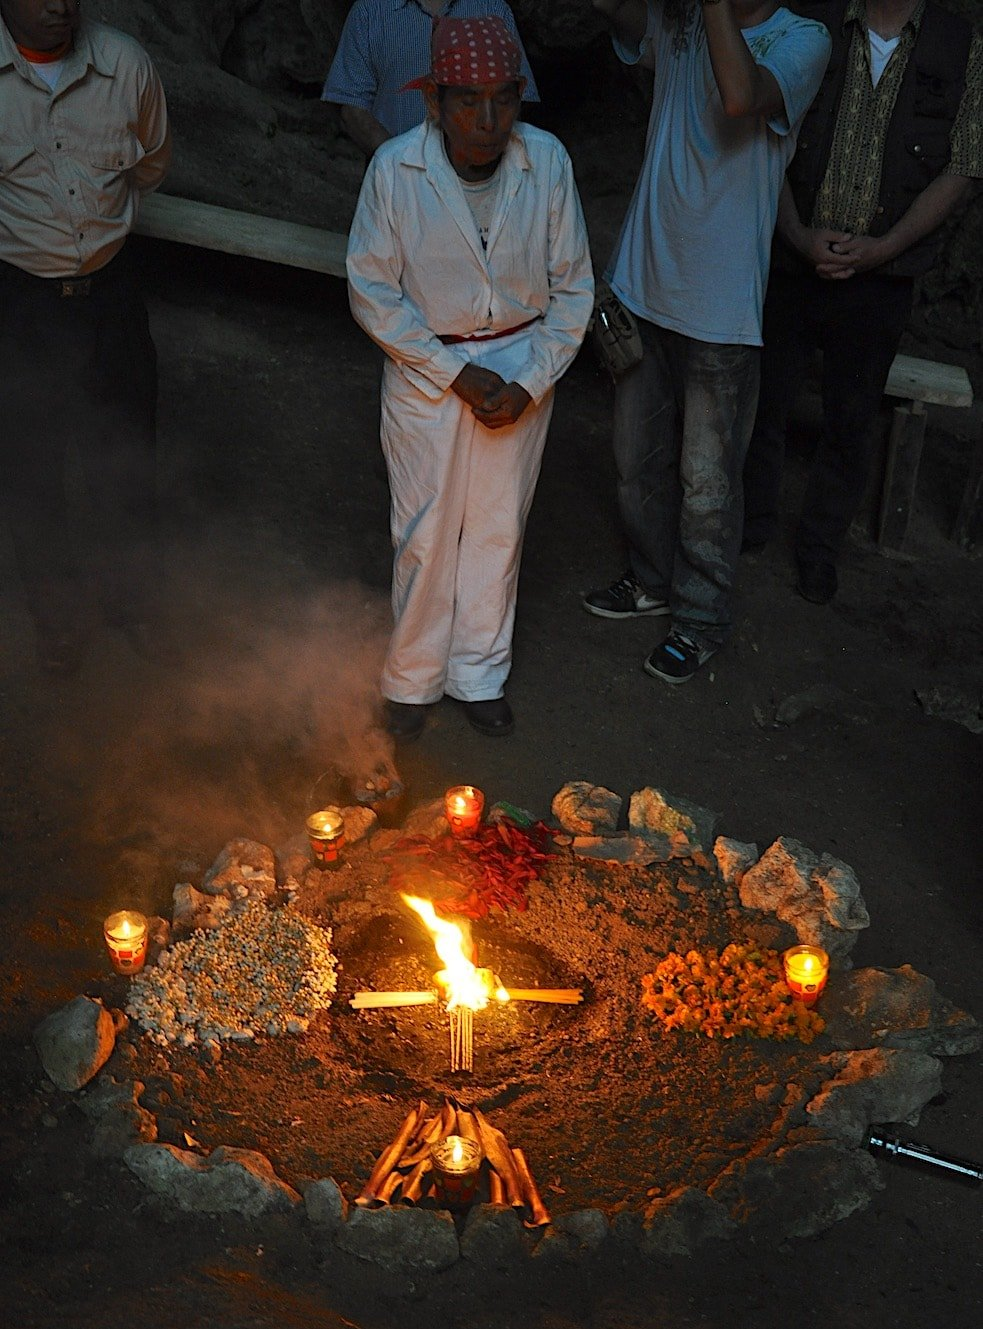 A shaman conducts a Mayan ceremony in a sacred cave near Coban, Guatemala.